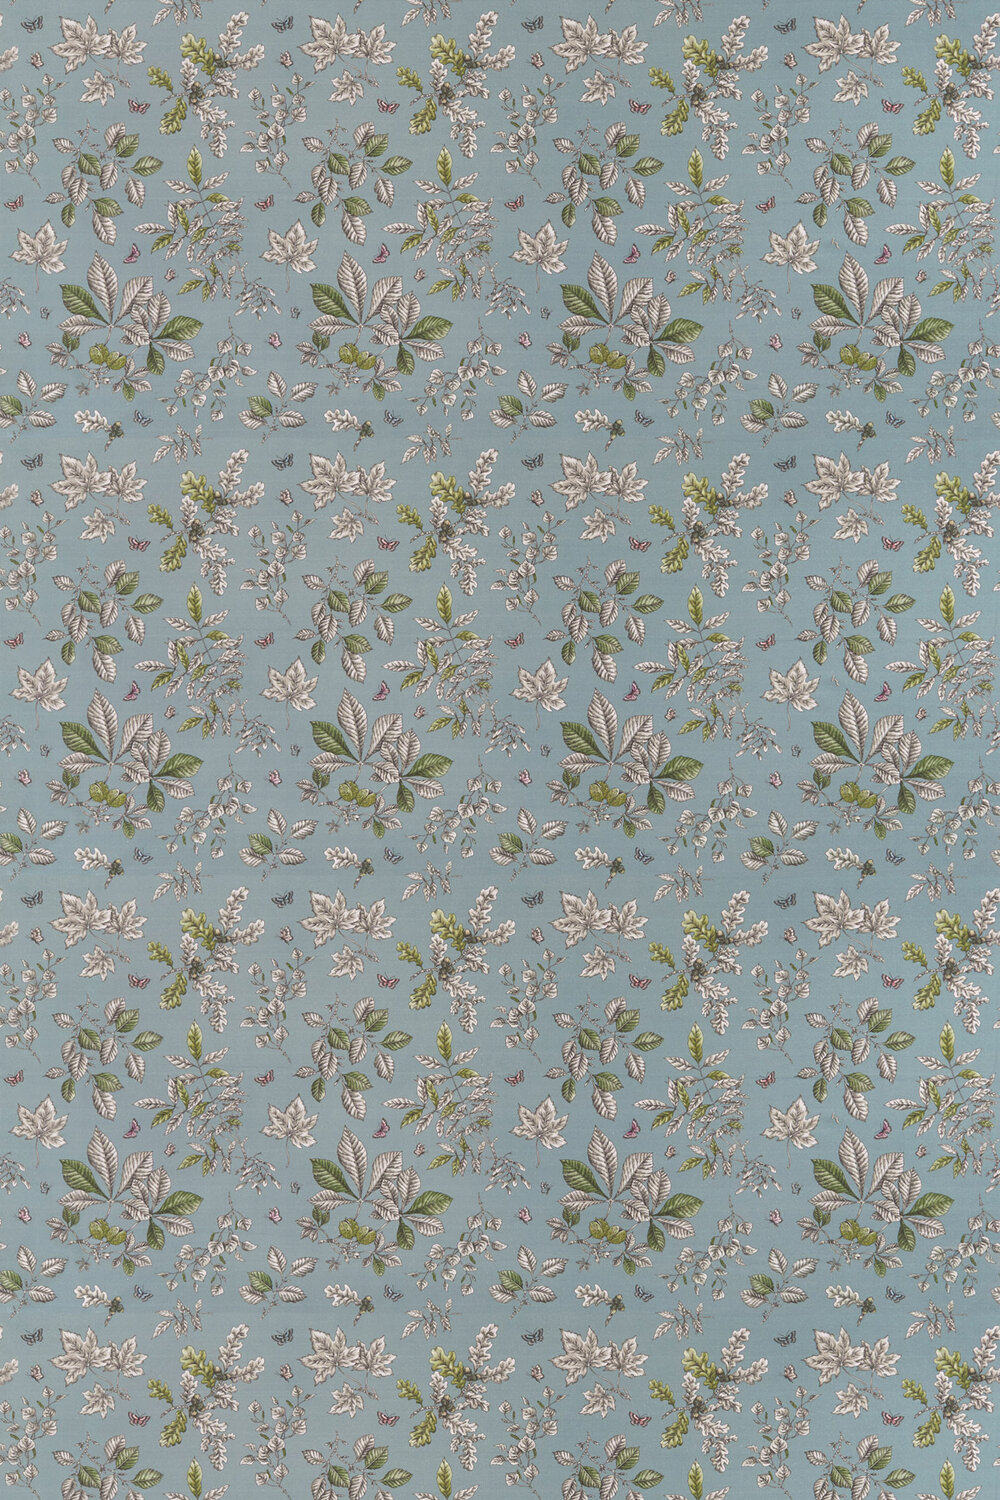 Clarke & Clarke Hortus Mineral Fabric - Product code: F1329/05